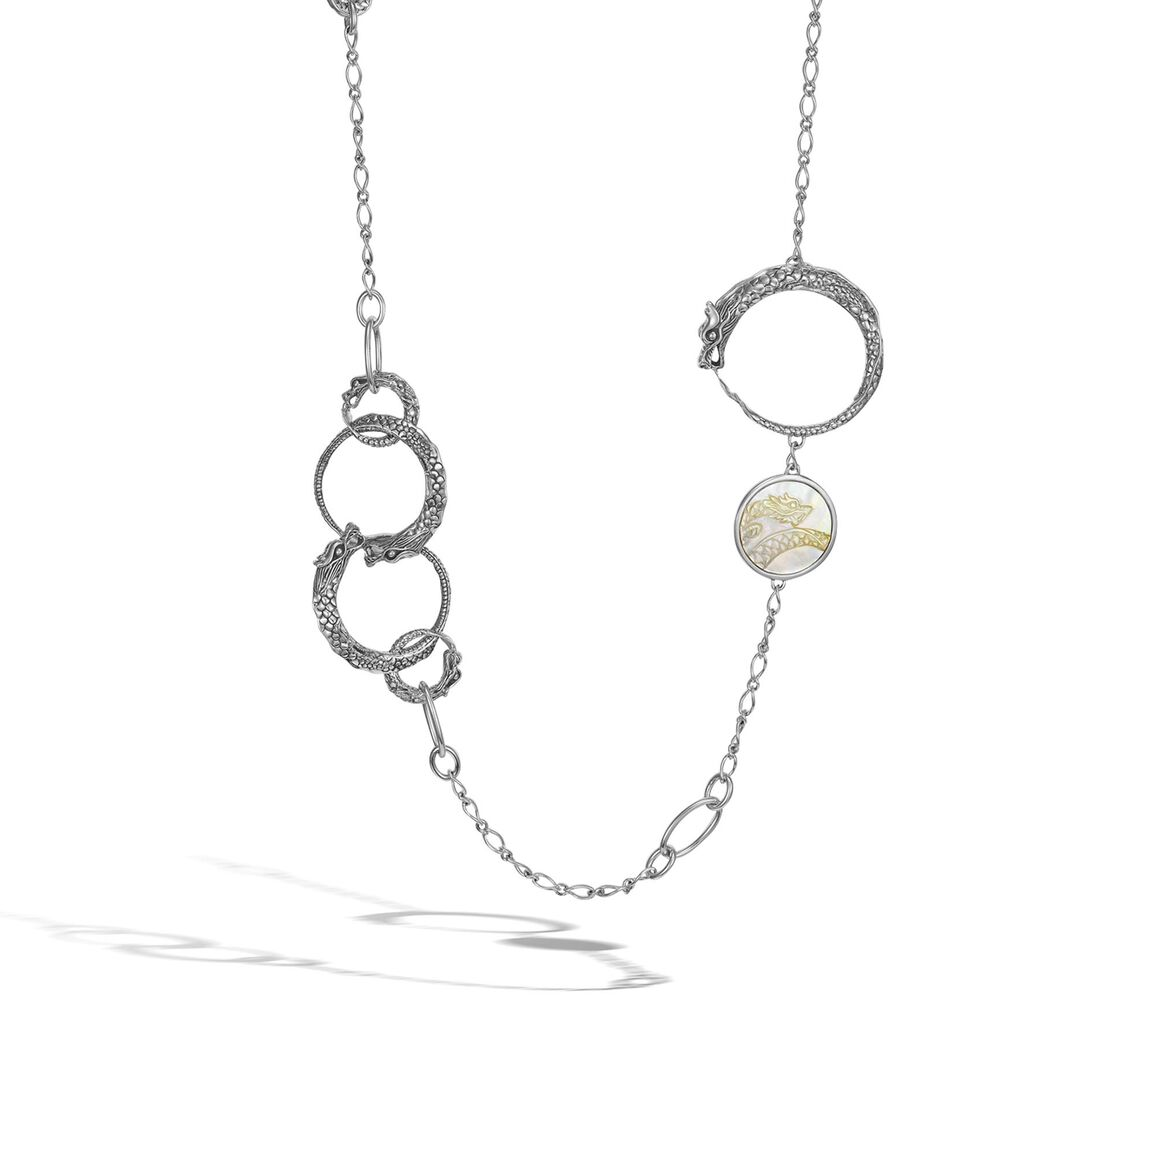 Sautoir Necklace with Pearl and Mother of Pearl